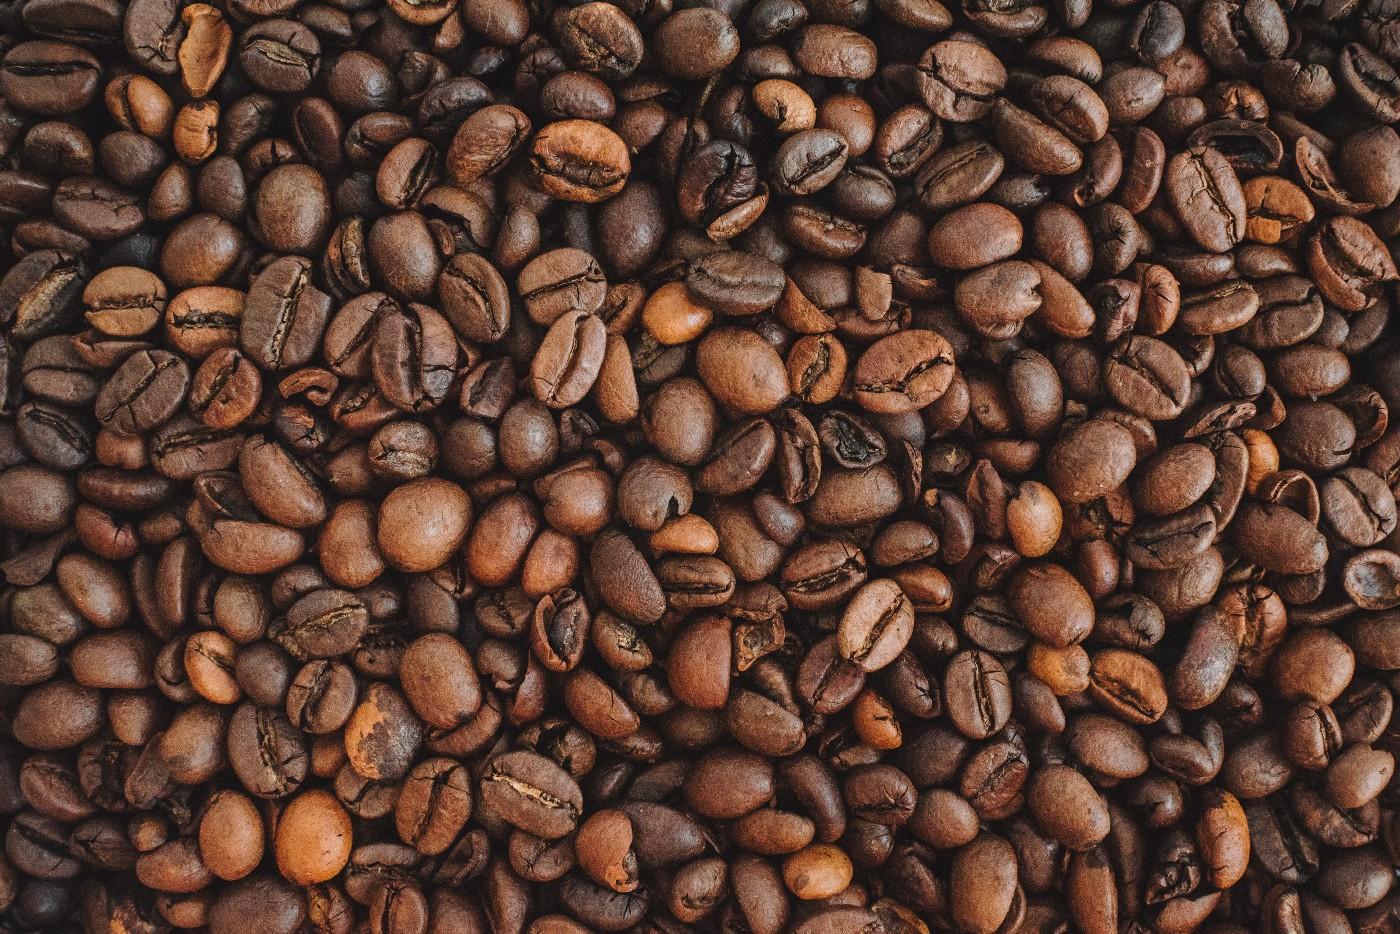 Close-up image of medium roast coffee beans.